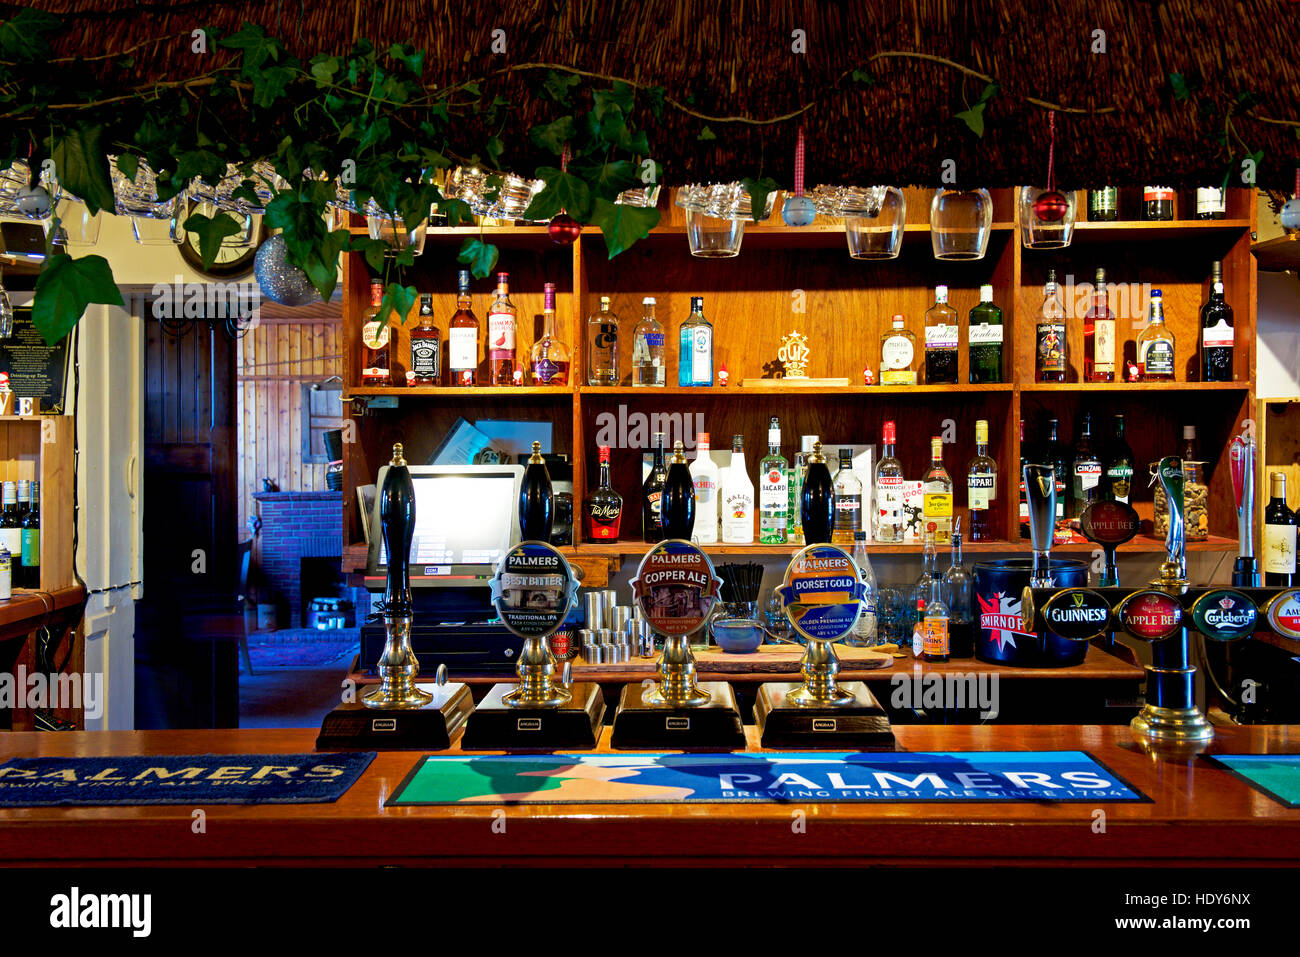 the-bar-of-the-three-horseshoes-inn-in-the-village-of-powerstock-dorset-HDY6NX.jpg